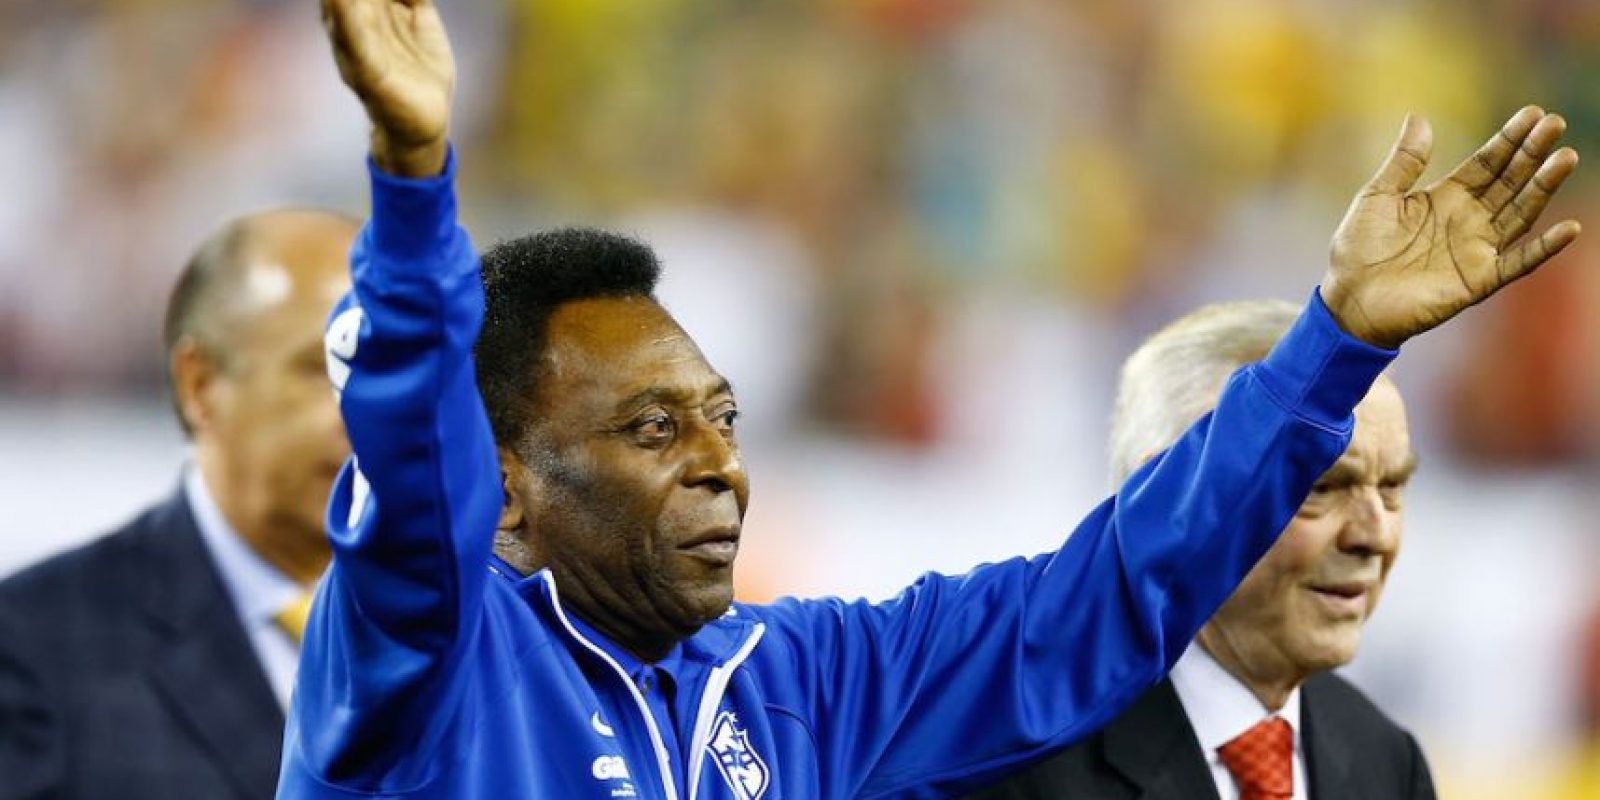 Pelé está luchando por su vida. Foto: Getty Images